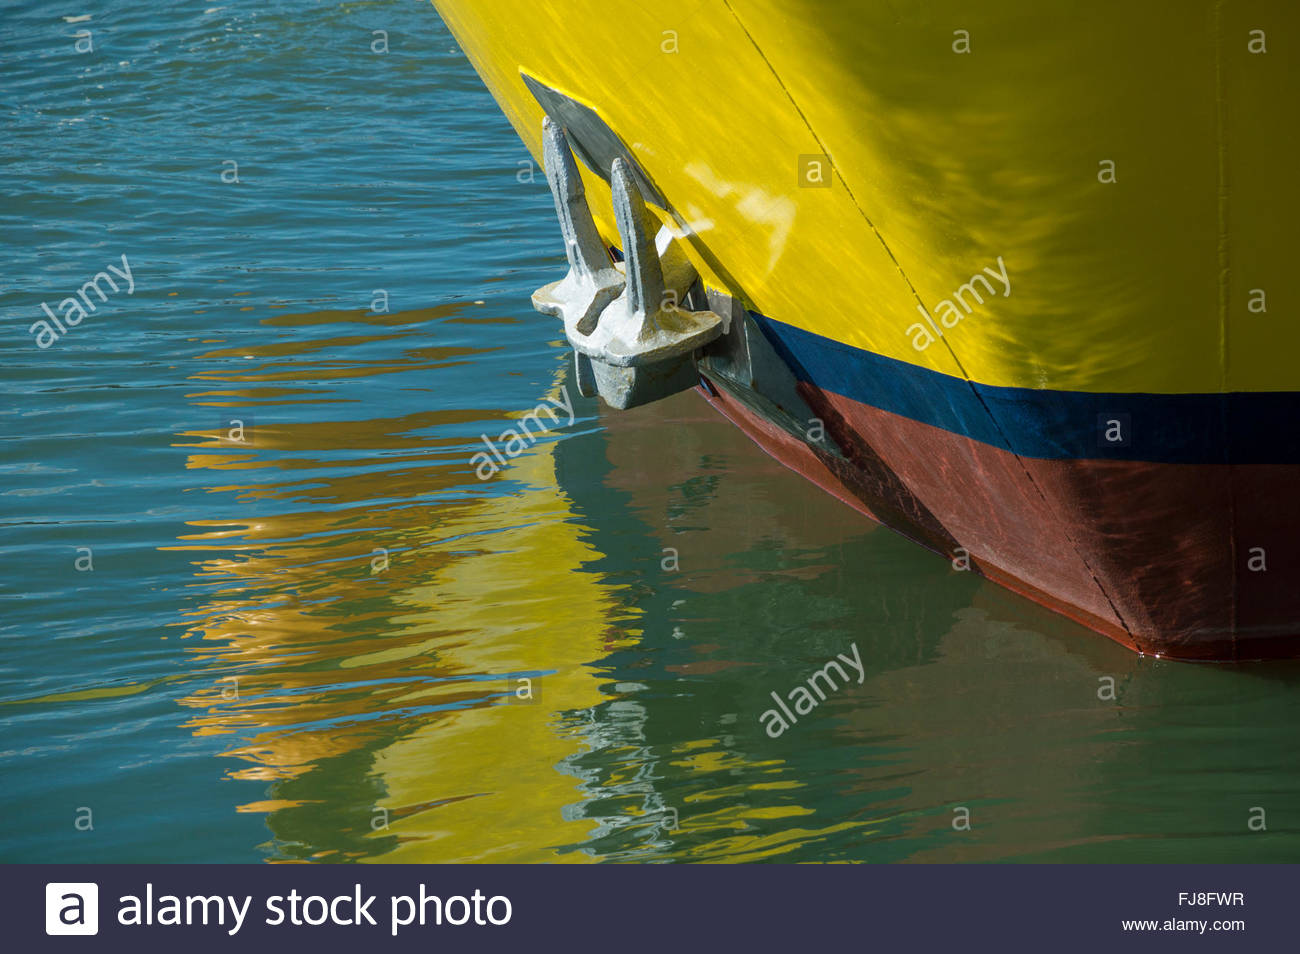 Close-up of the prow and anchor of a boat and its reflection, Quayside, Poole, Dorset, England - Stock Image